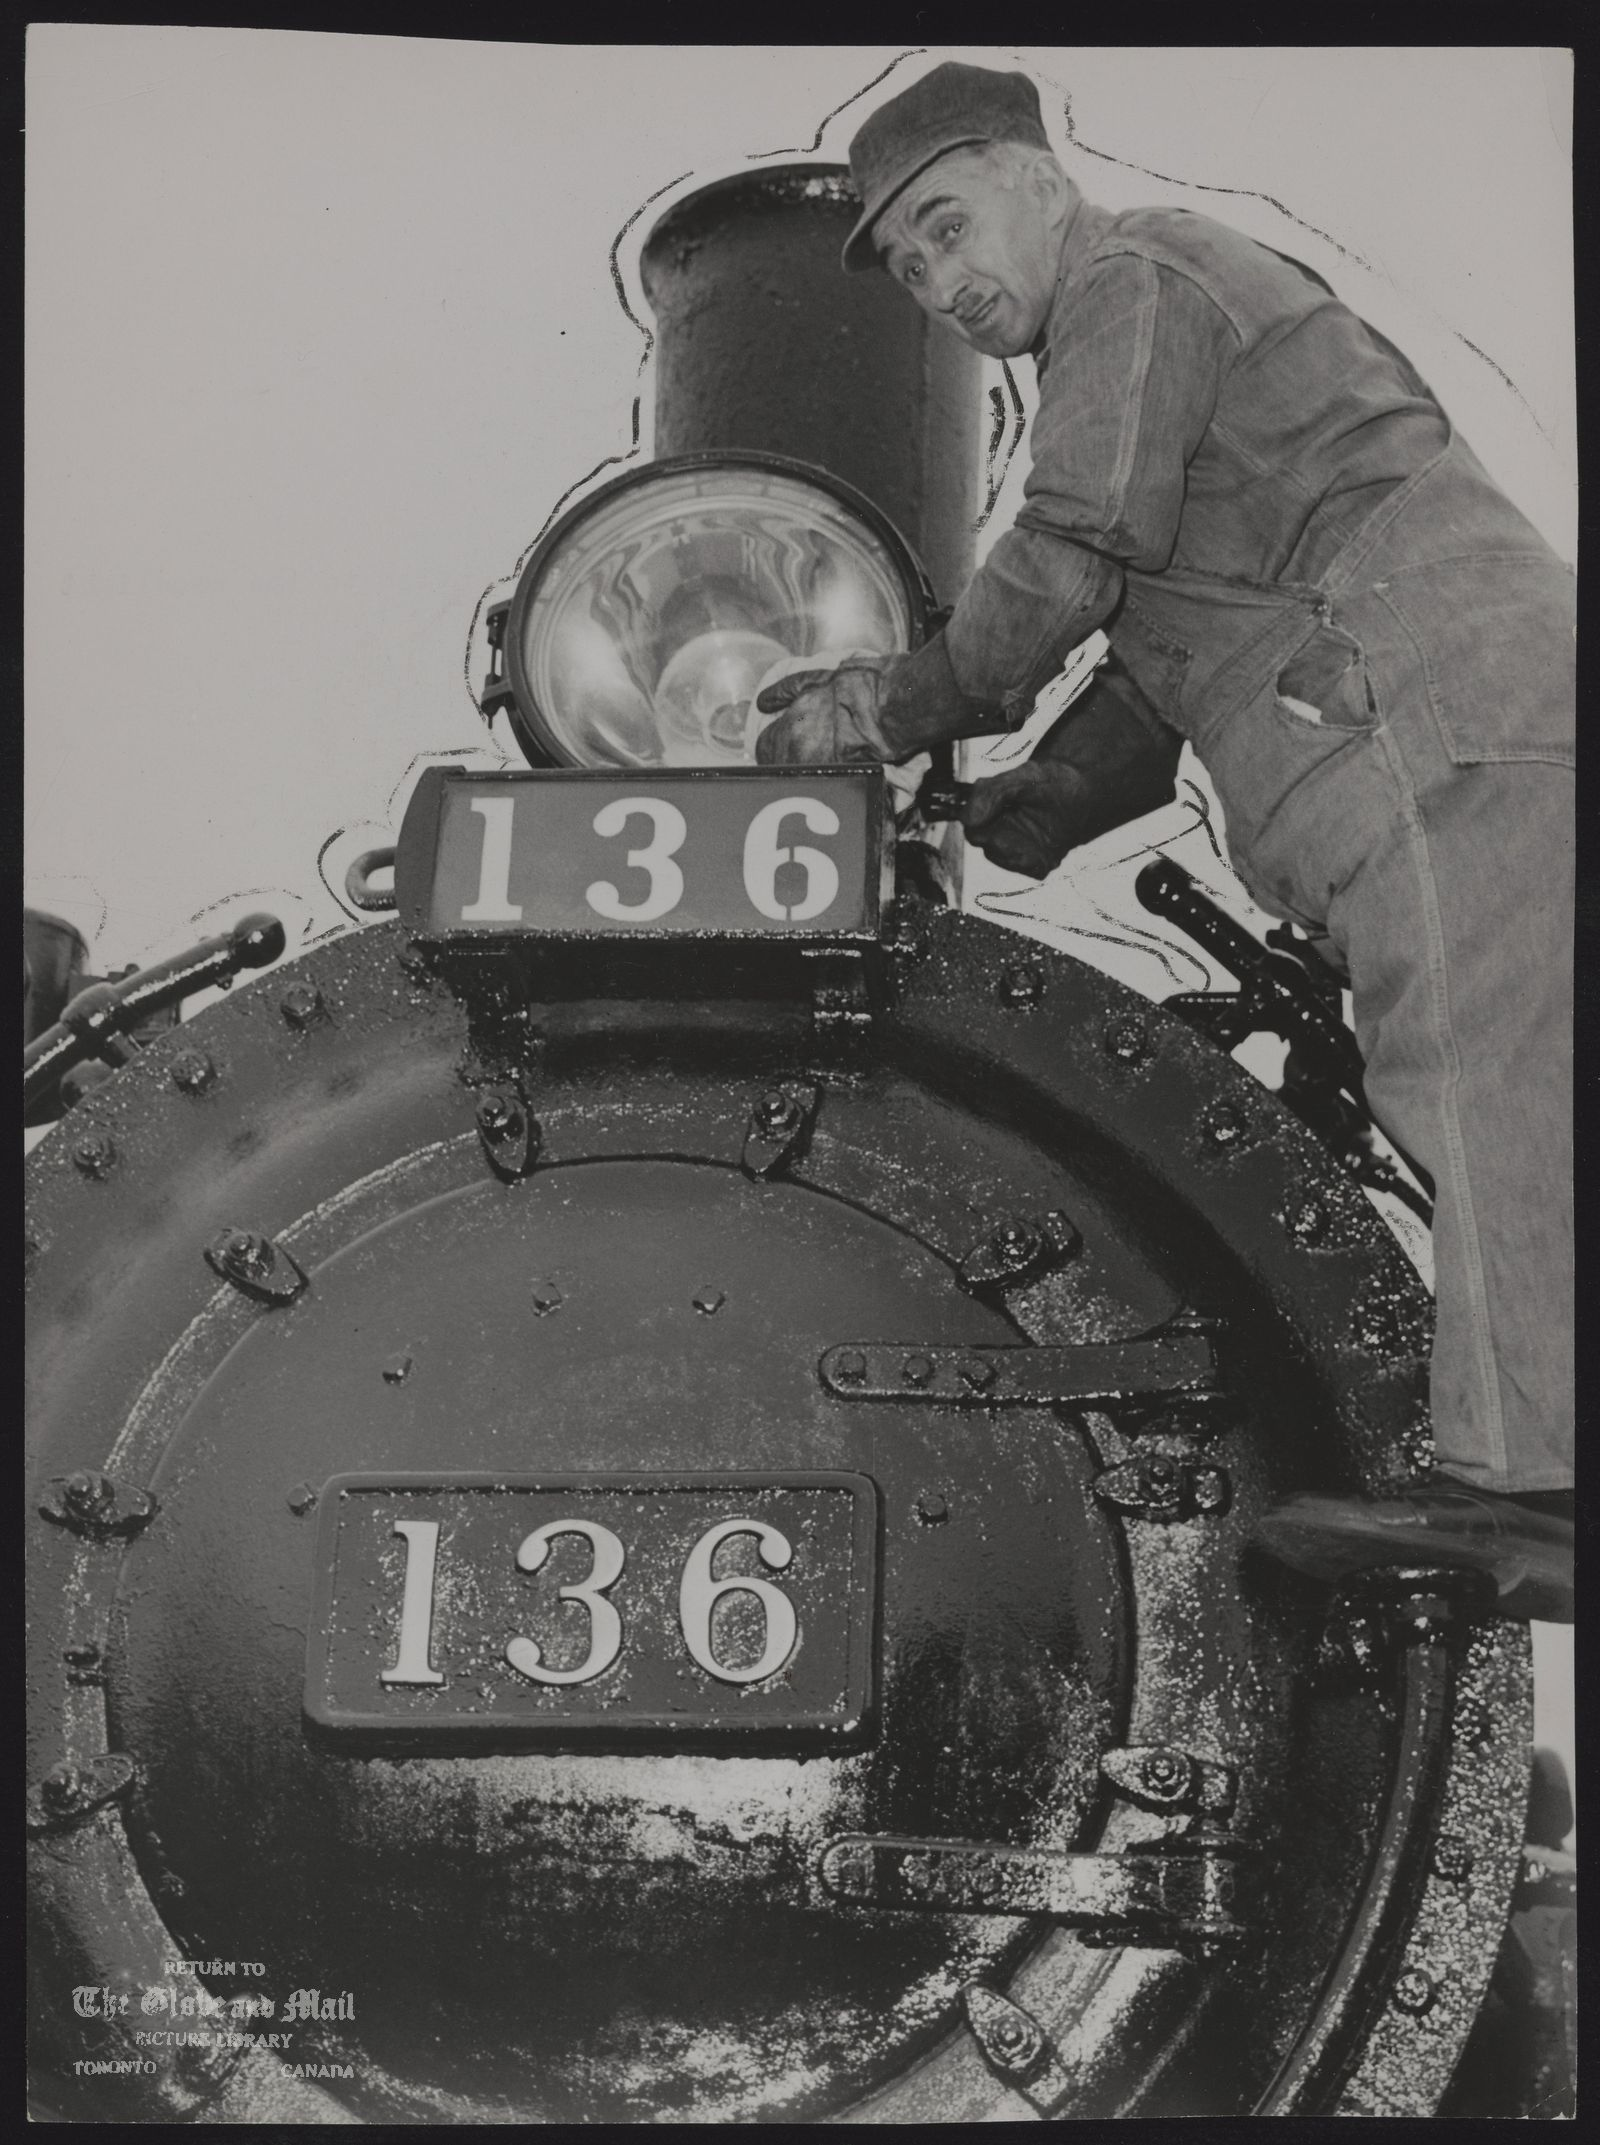 CPR Rolling Stock Hostler Benjamin Jones pays special attention to the headlight on old Engine 136. [NB: Canadian Pacific 136 is a class A-2-m 4-4-0 steam locomotive built in 1883 by the Rogers Locomotive Works for the Canadian Pacific Railway as No. 140. The locomotive was used for both passenger and freight service for the Canadian Pacific railroad. In 1912 she was renumbered to 115, and the following year she was given her final number and reclassified to A2m. No. 136 was retired from the Canadian Pacific roster in 1960. The engine now remains in operating condition at the South Simcoe Railway in Tottenham, Ontario.]